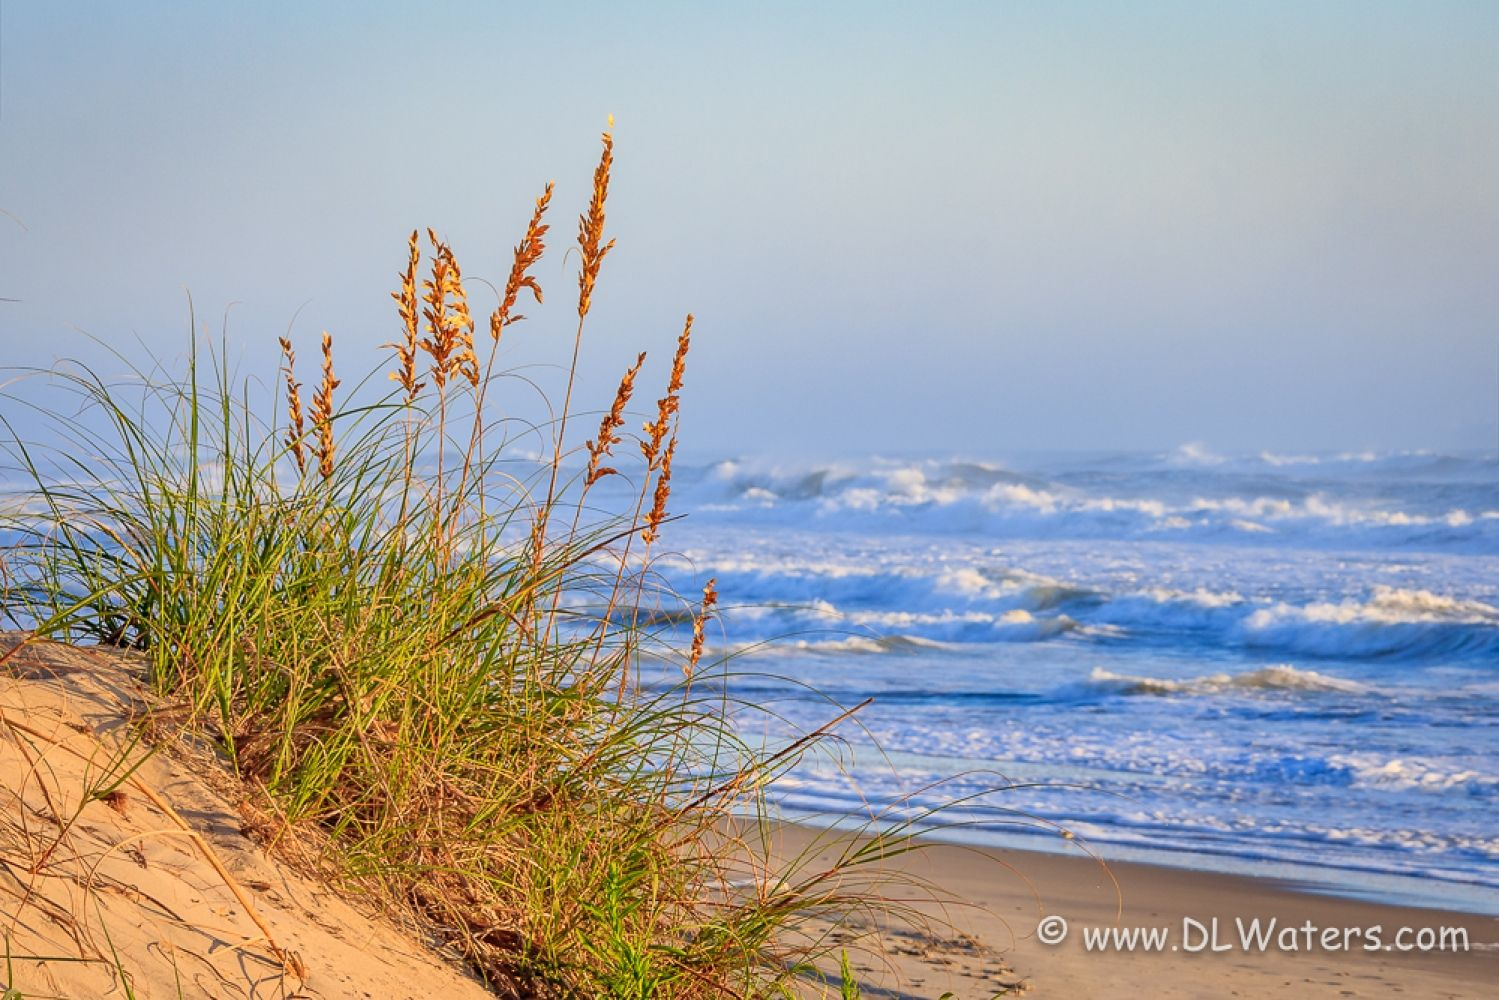 Sea And Sea Oats Sunny Cape Hatteras Beach Morning On The Outer Banks Of Nc Dlwaters Com To See Outer Banks Beach Cape Hatteras Beach North Carolina Travel